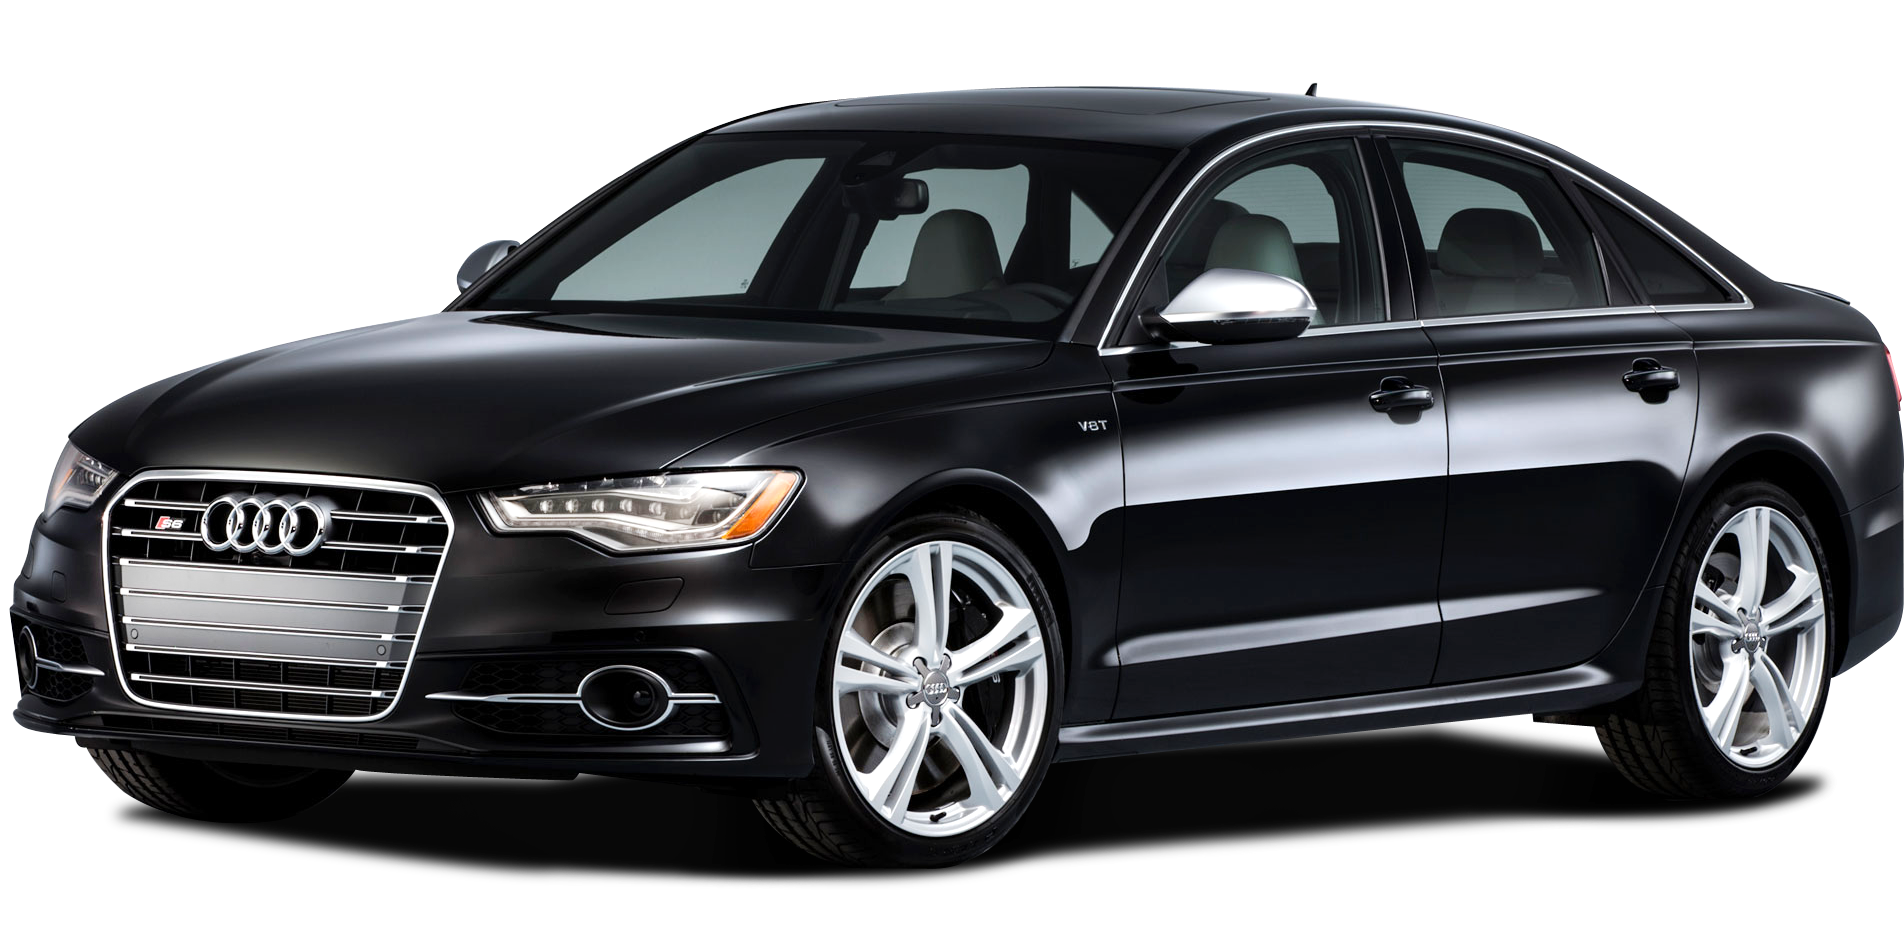 Audi A4 Car Png Image Purepng Free Transparent Cc0 Png Image Library